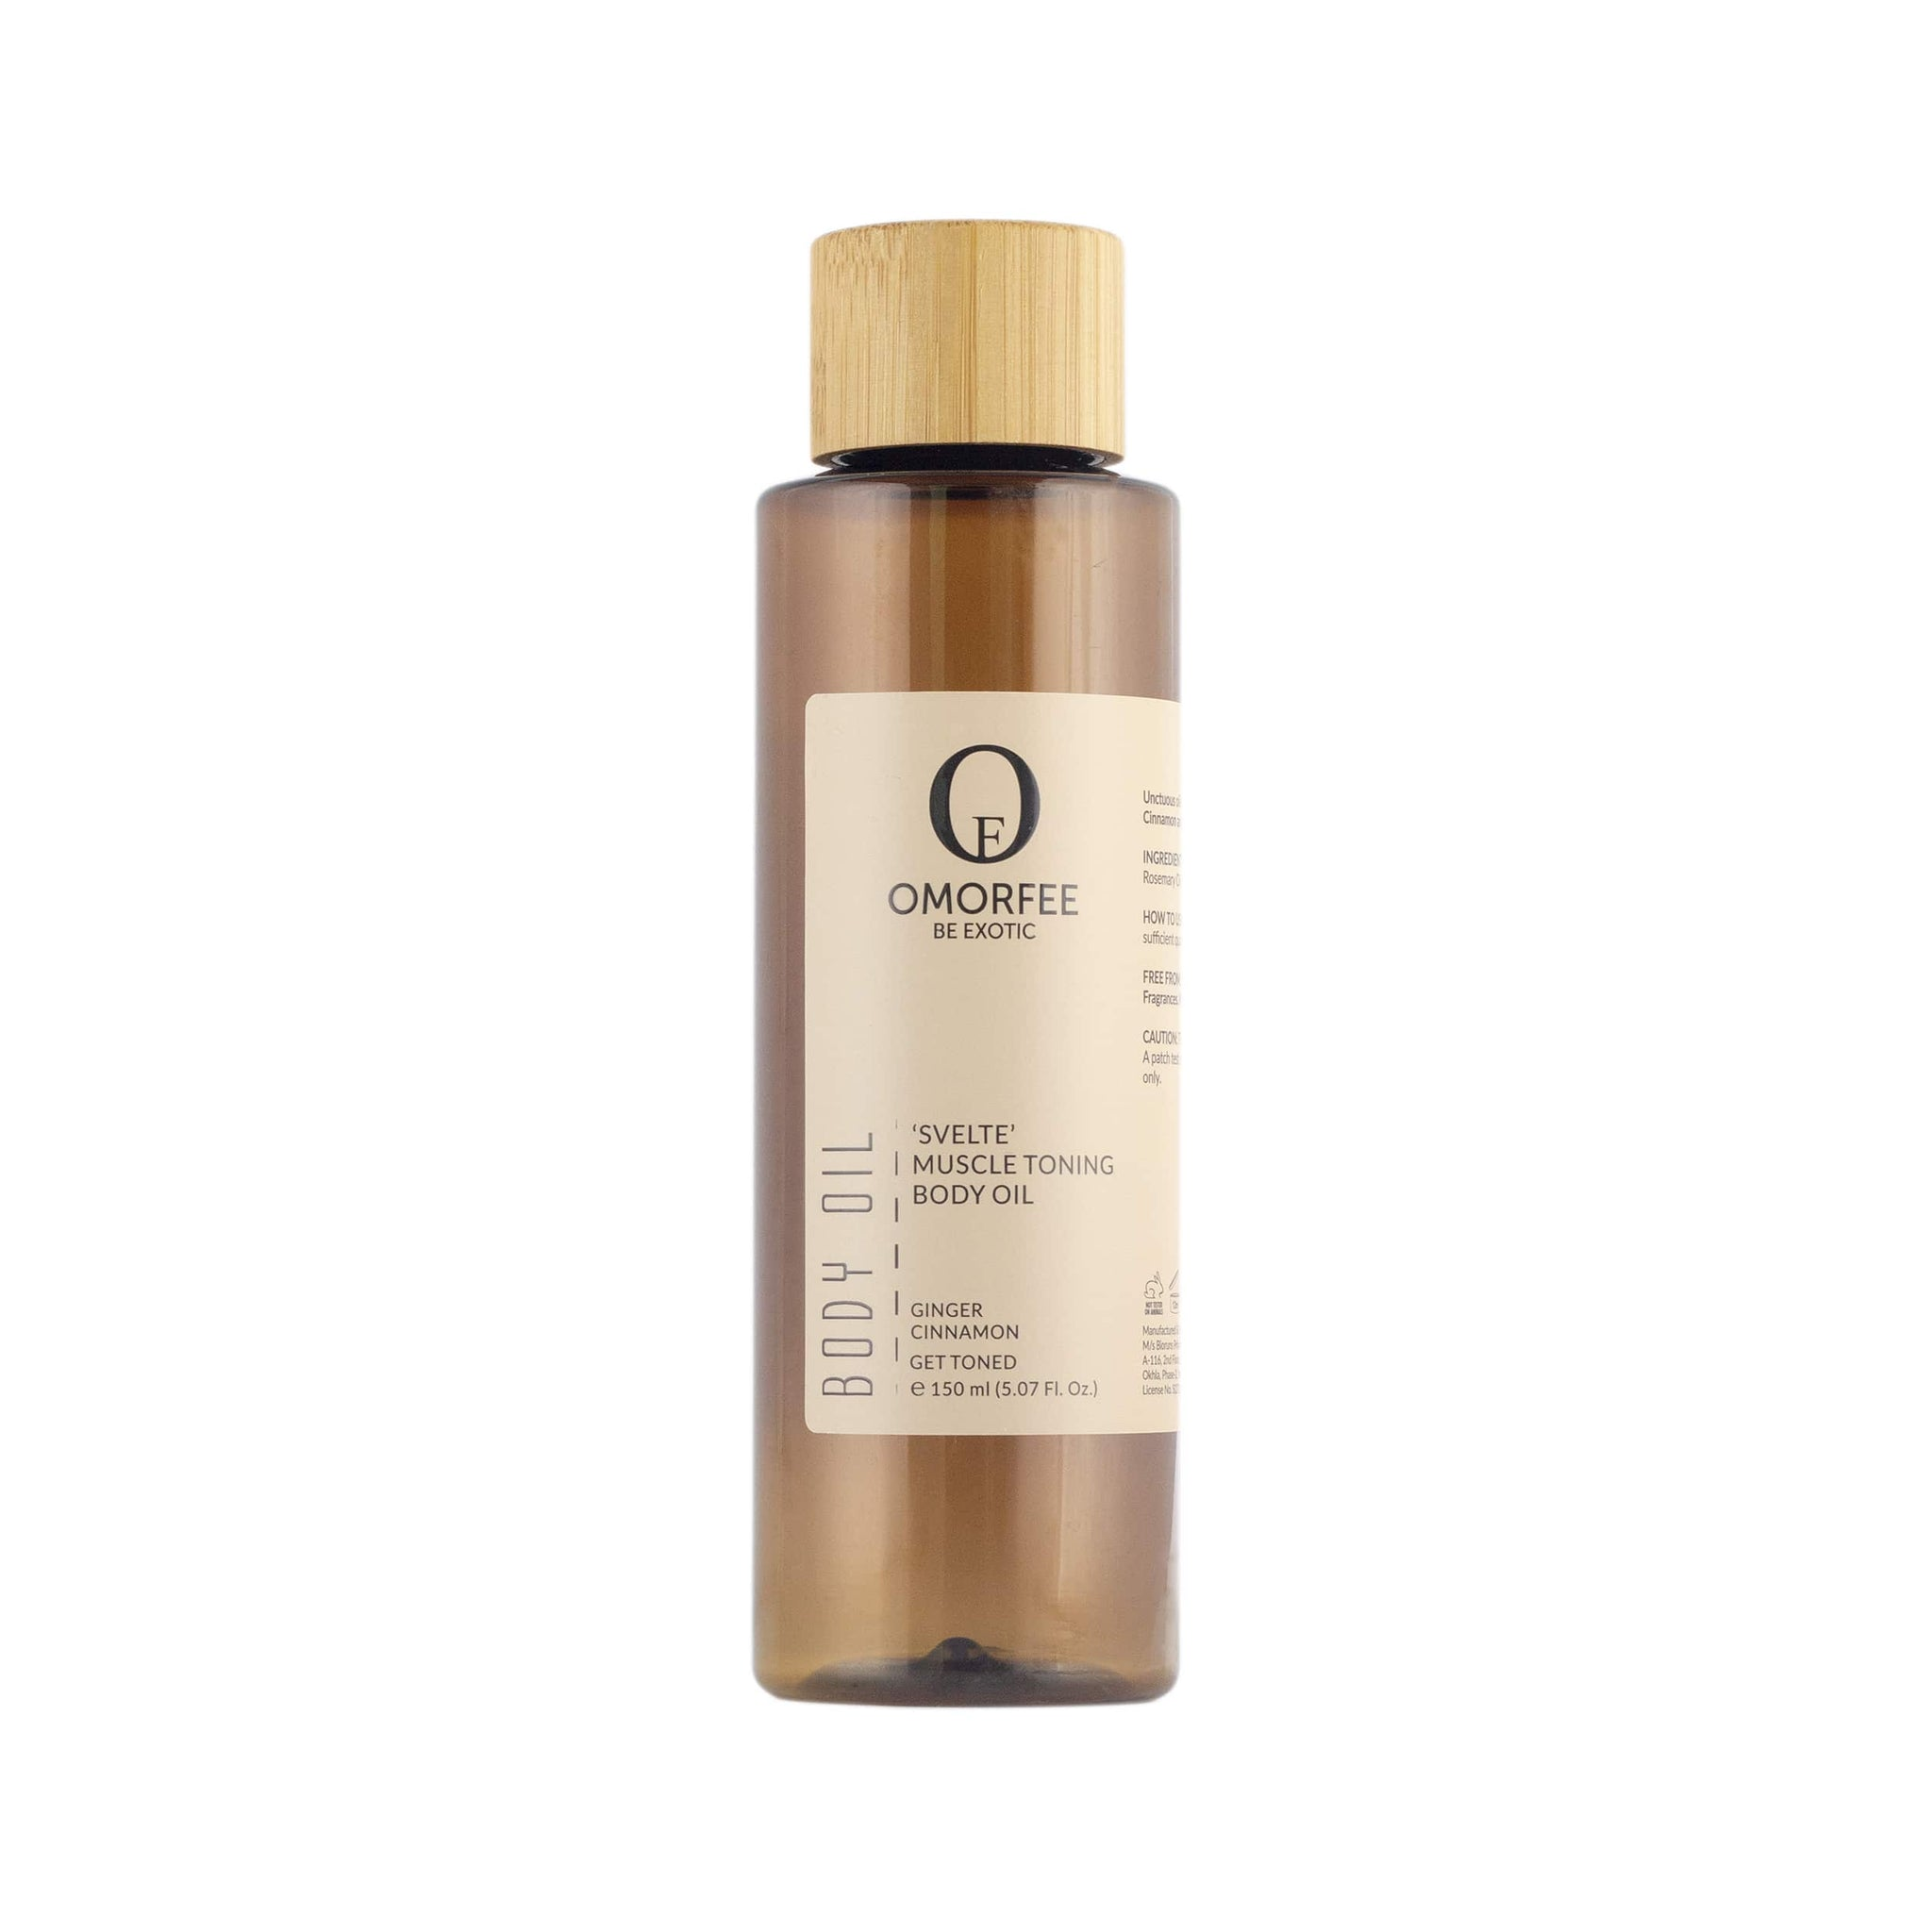 Omorfee Organic and all natural body oil. Omorfee-svelte-muscle-toning-body-massage-oil-front-organic-skincare-products-organic-beauty-products-massage-oil-relaxing.